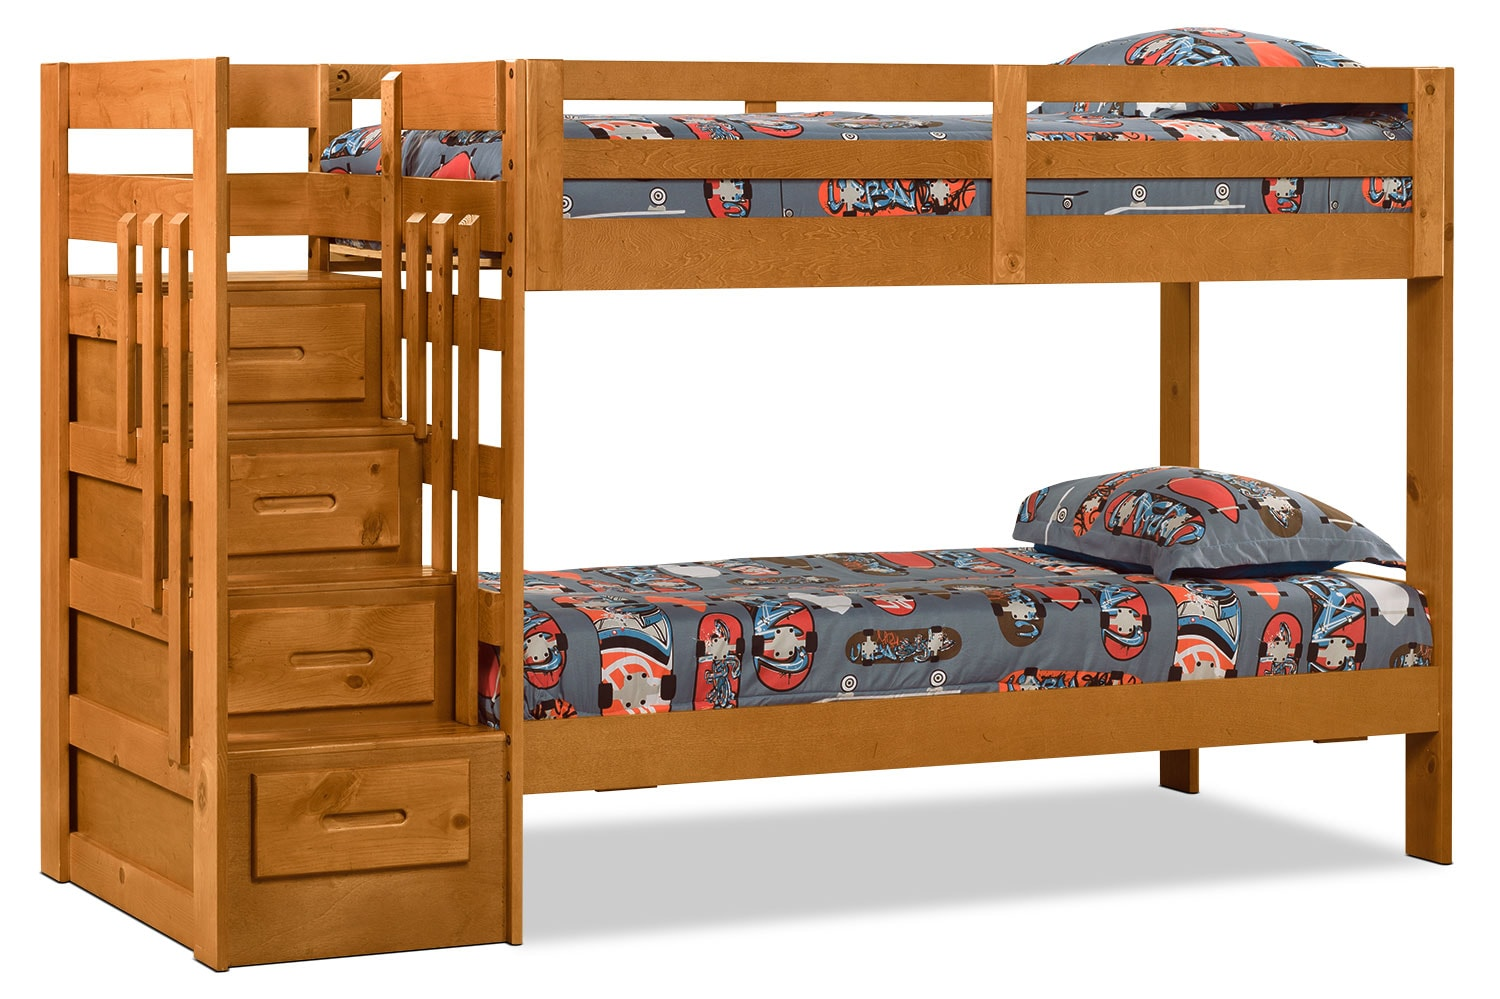 Ponderosa Staircase Bunk Bed